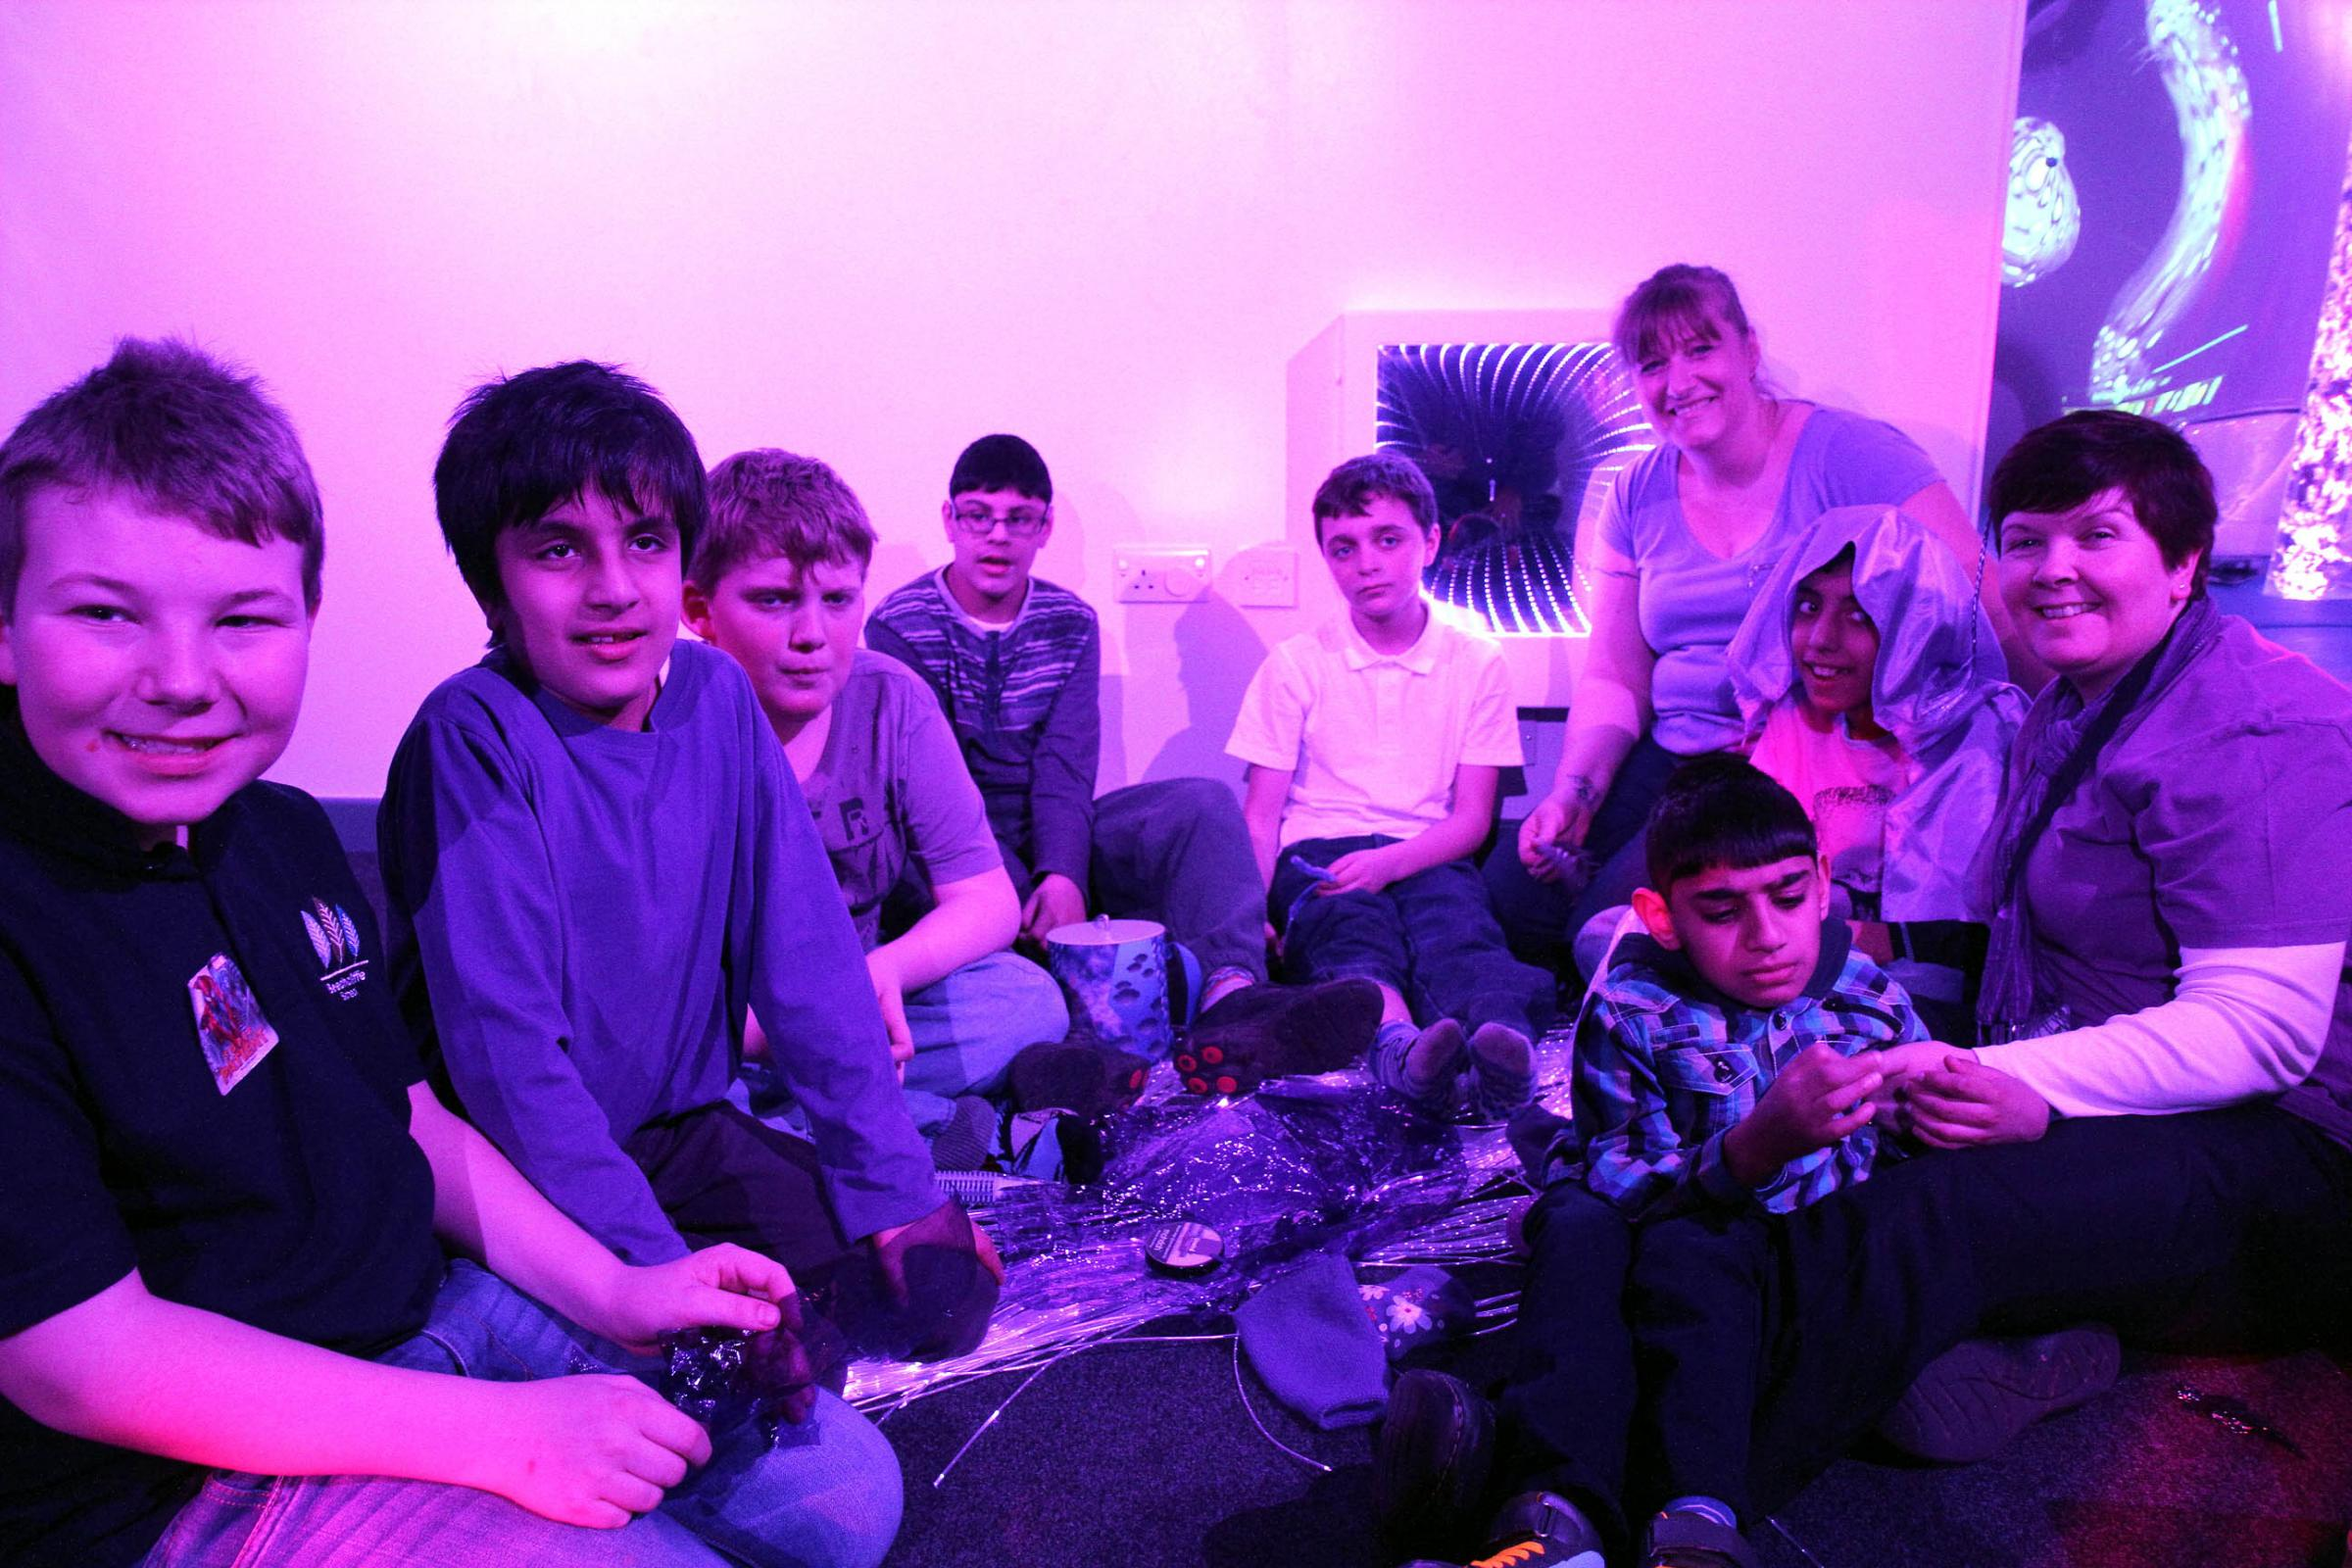 Beechcliffe School class one students and staff join in the purple-themed epilepsy-awareness day activities in the sensory room raising £200